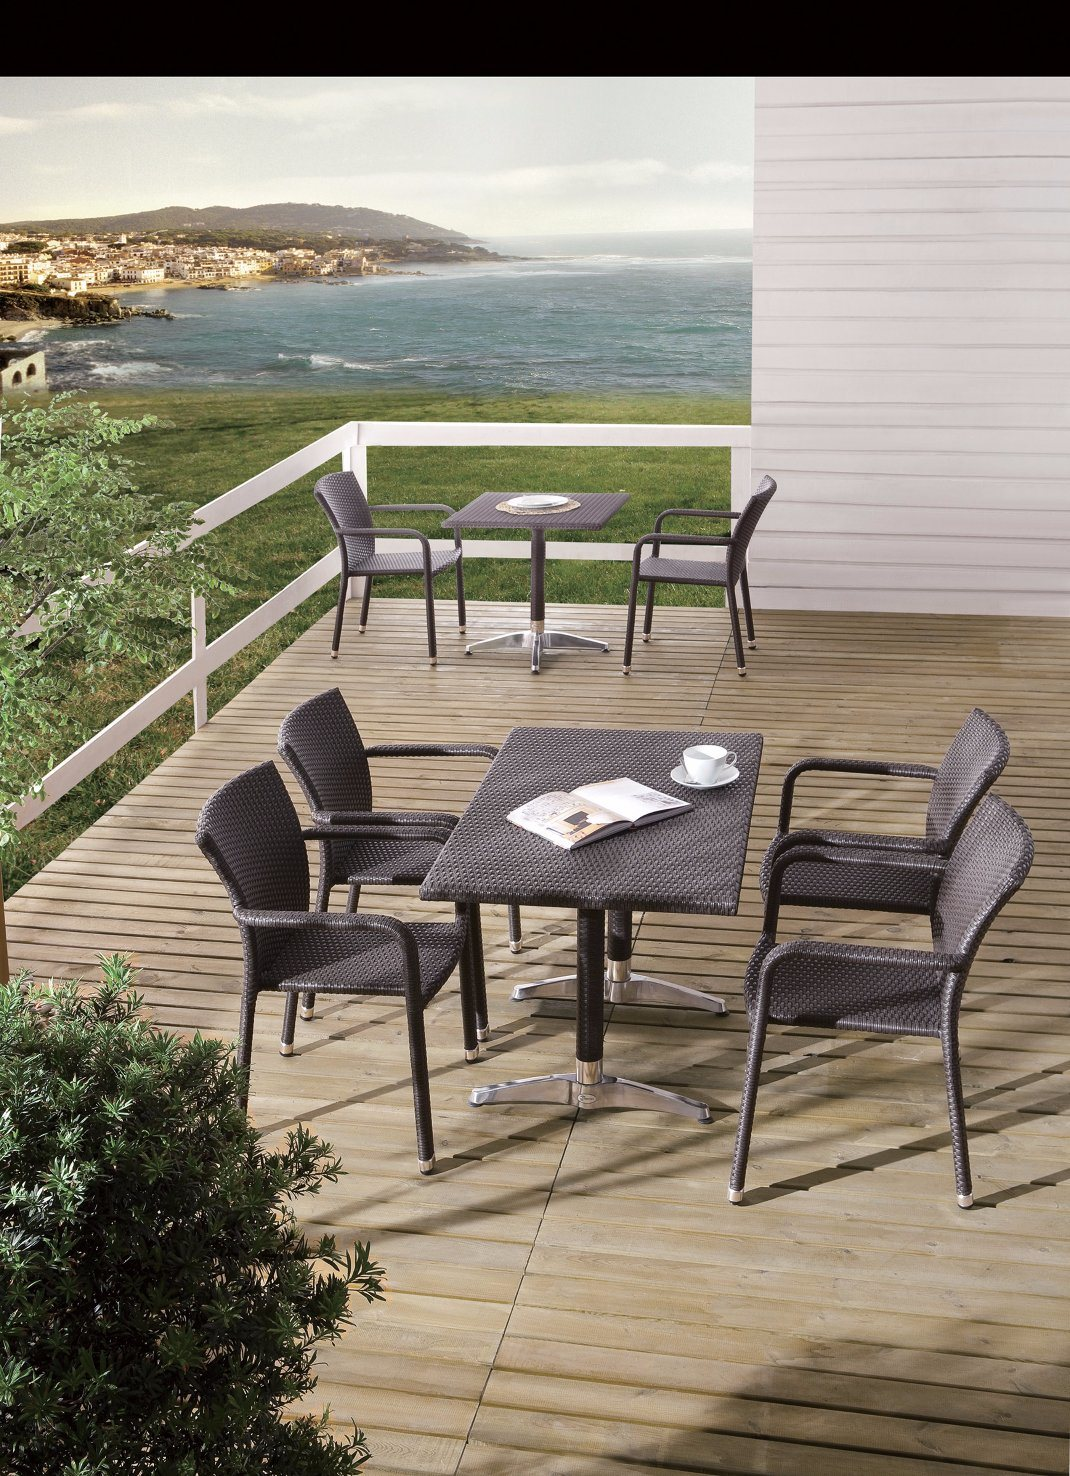 Outdoor Wicker Patio Dining Garden Home Hotel Office Rattan Chair and Table (J374BR)